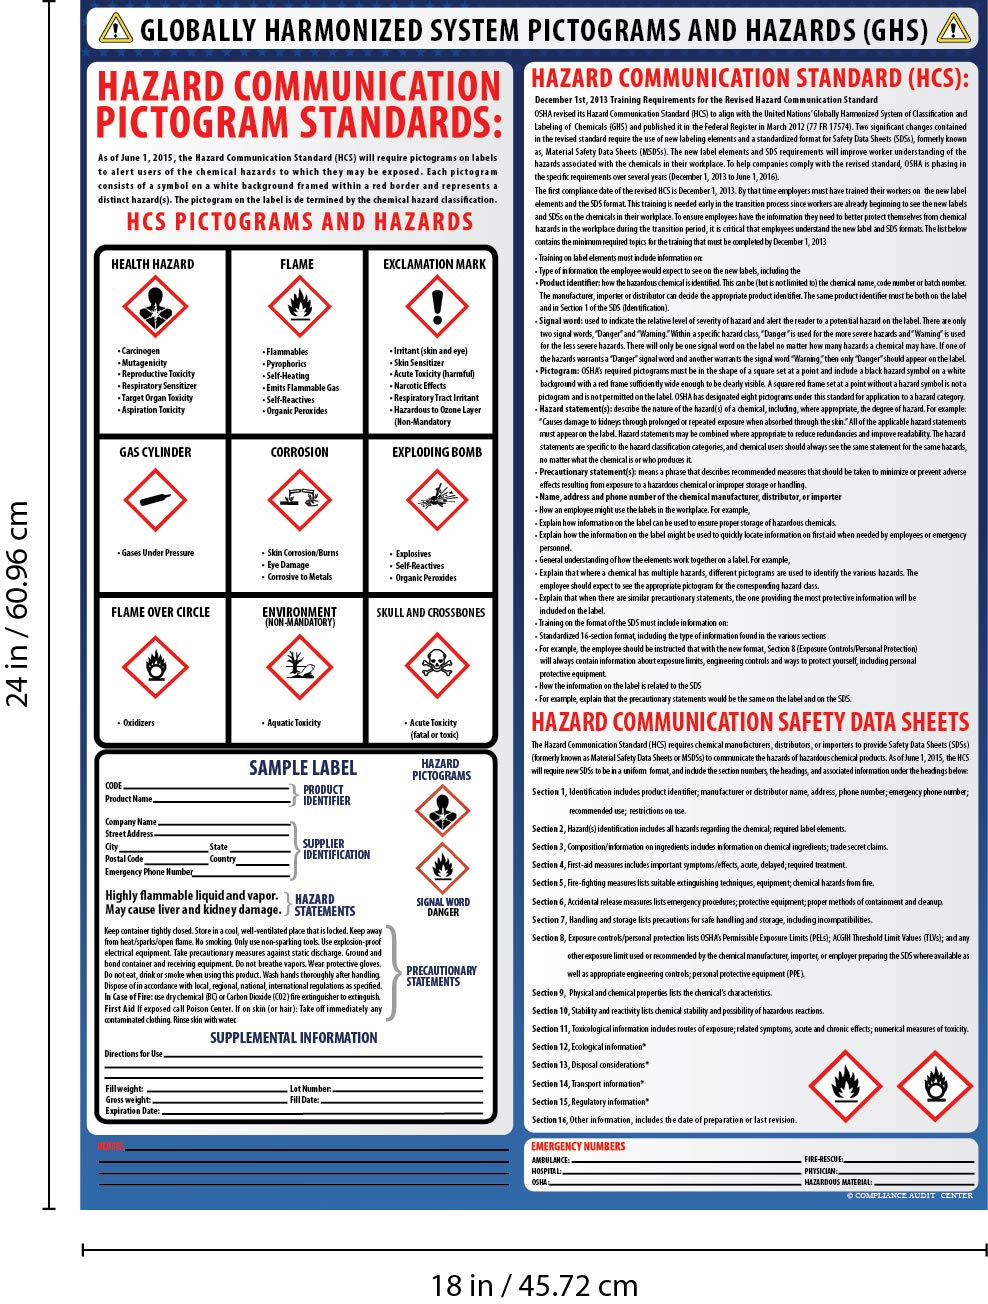 Amazon Globally Harmonized System Pictograms And Hazards Ghs